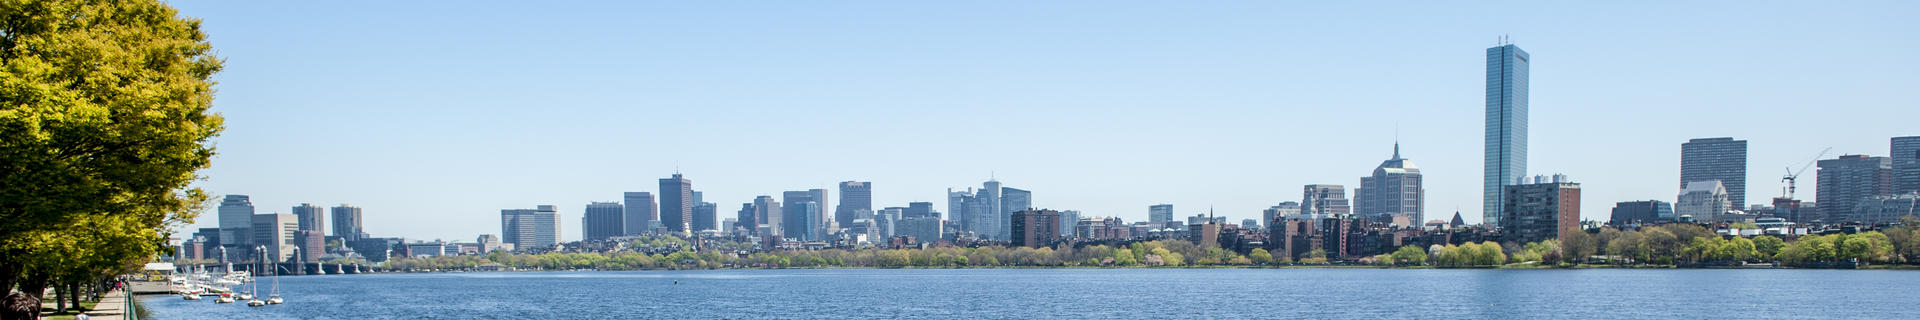 Panoramic skyline of Boston